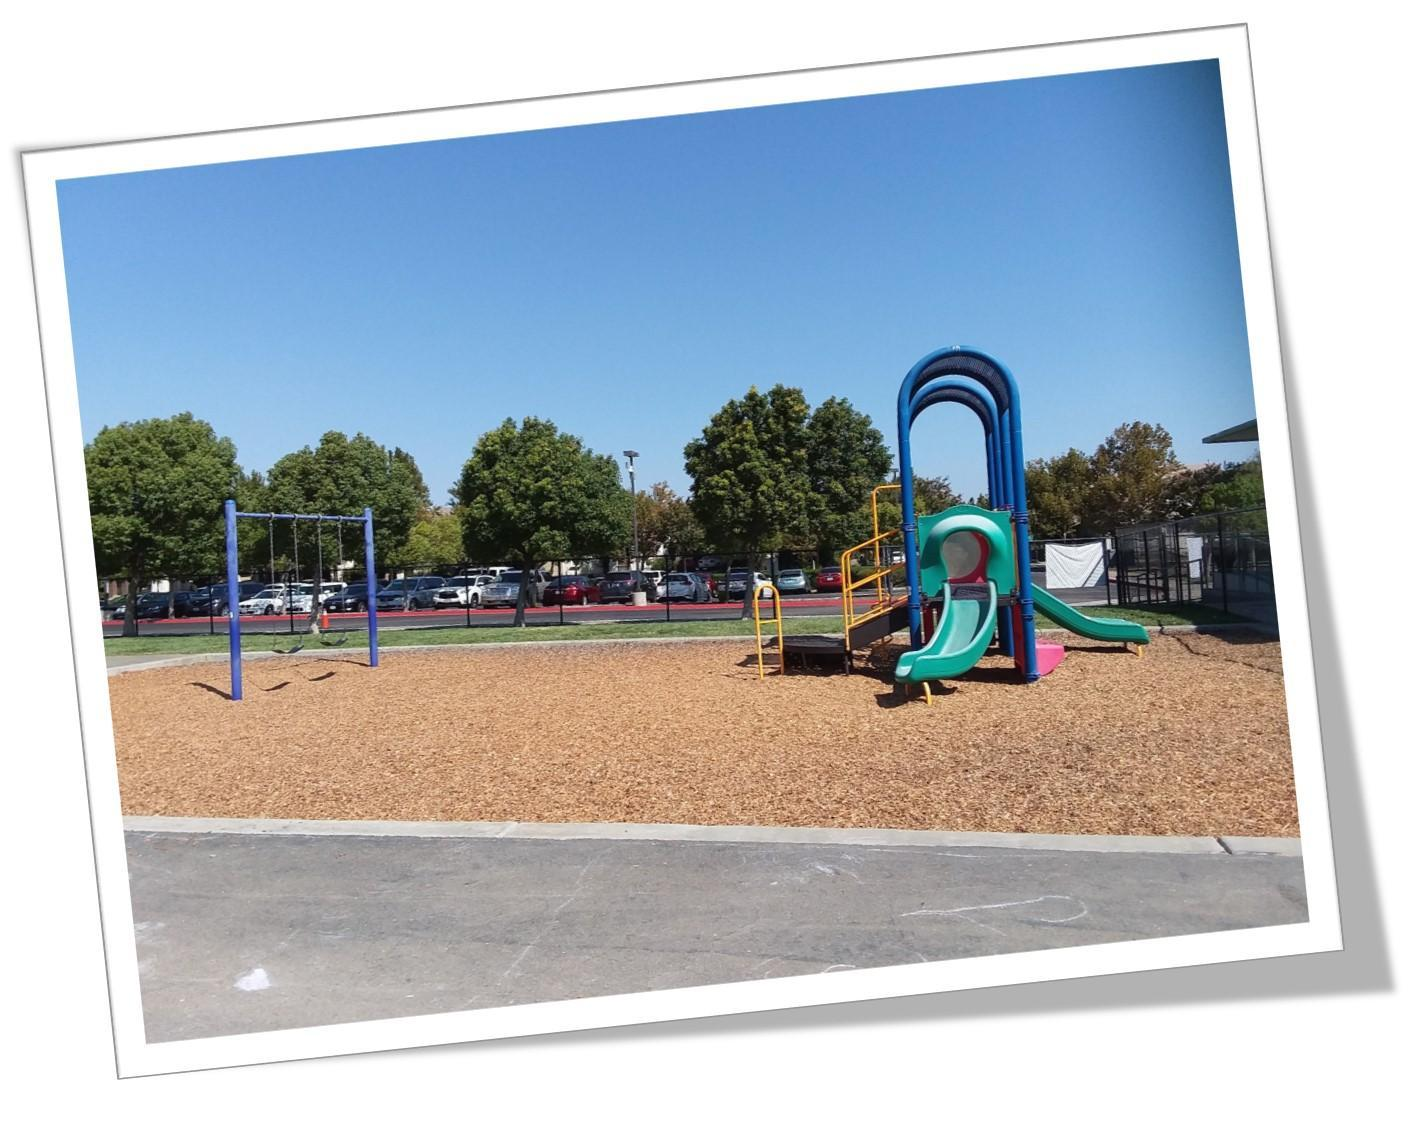 Picture of pre-school playground